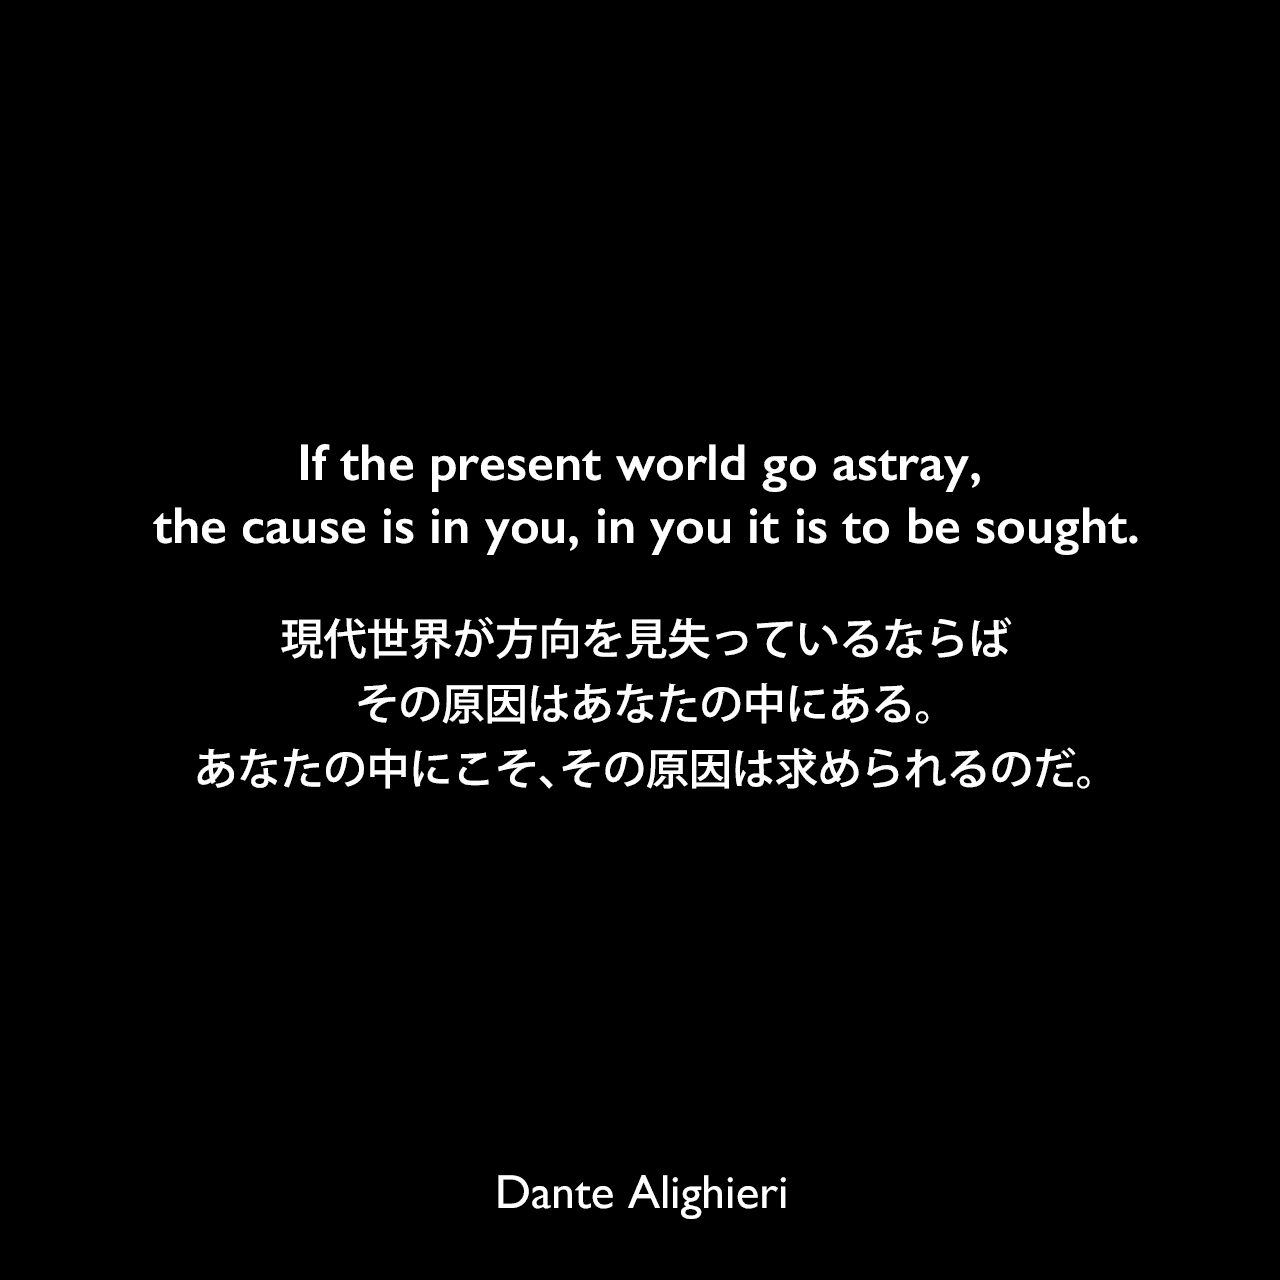 If the present world go astray, the cause is in you, in you it is to be sought.現代世界が方向を見失っているならば、その原因はあなたの中にある。あなたの中にこそ、その原因は求められるのだ。Dante Alighieri